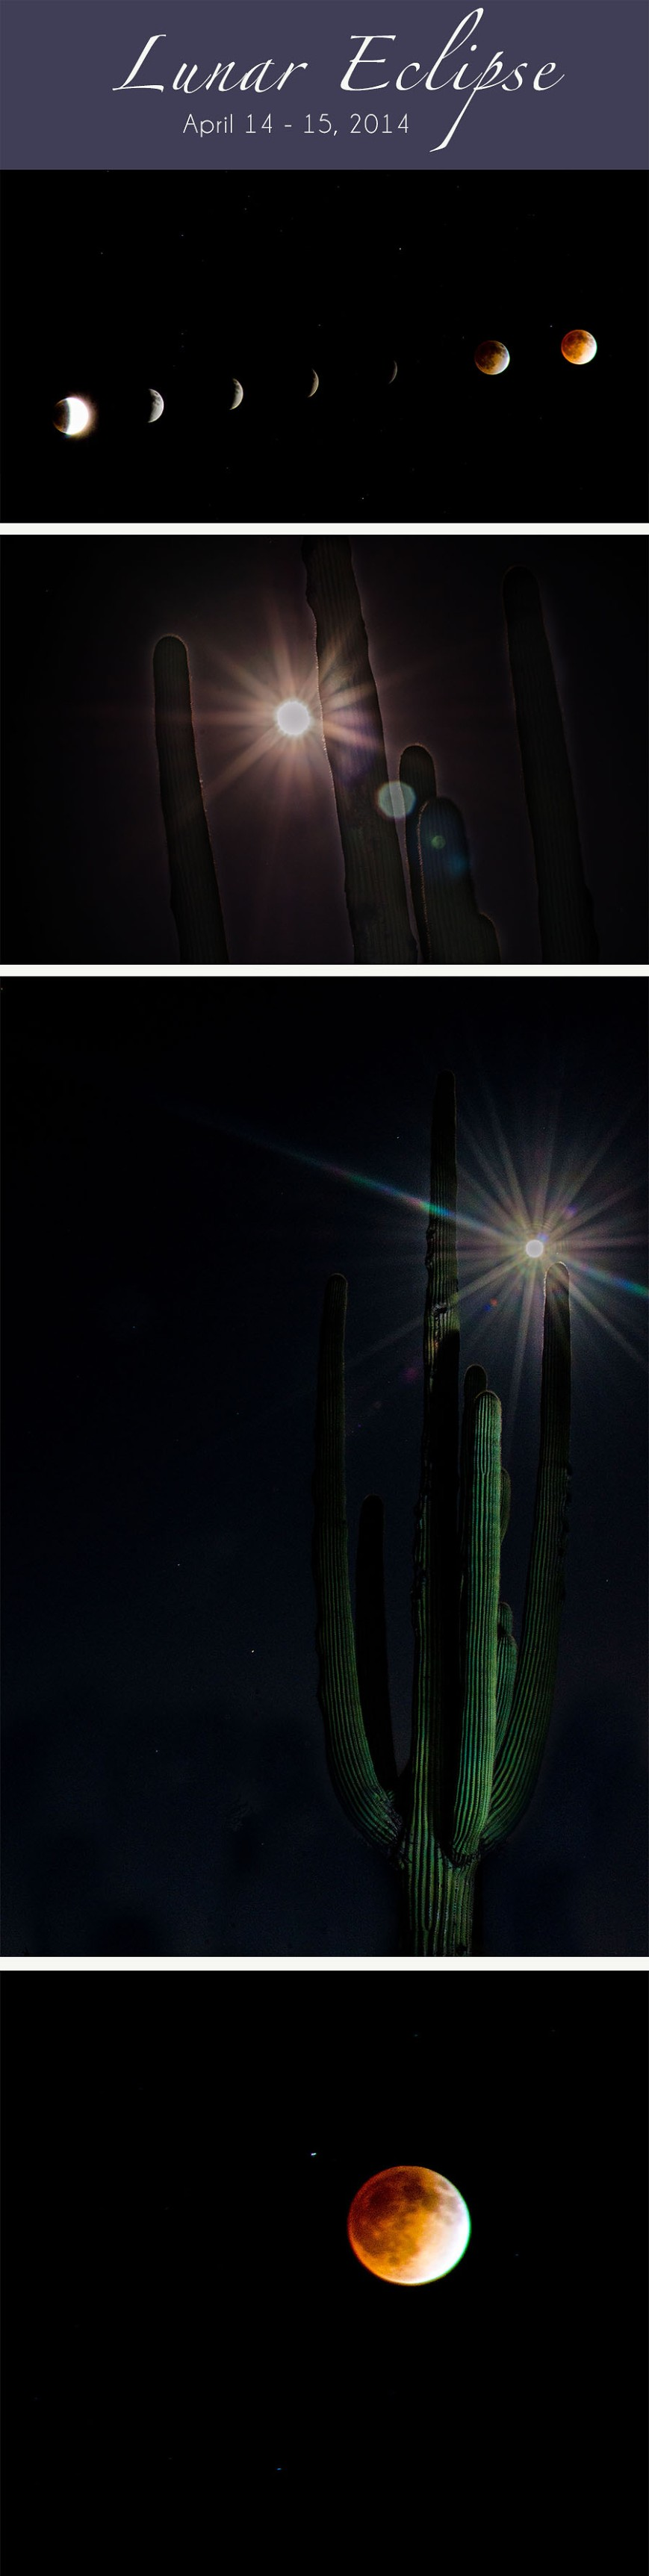 Lunar eclipse in the Tucson Desert